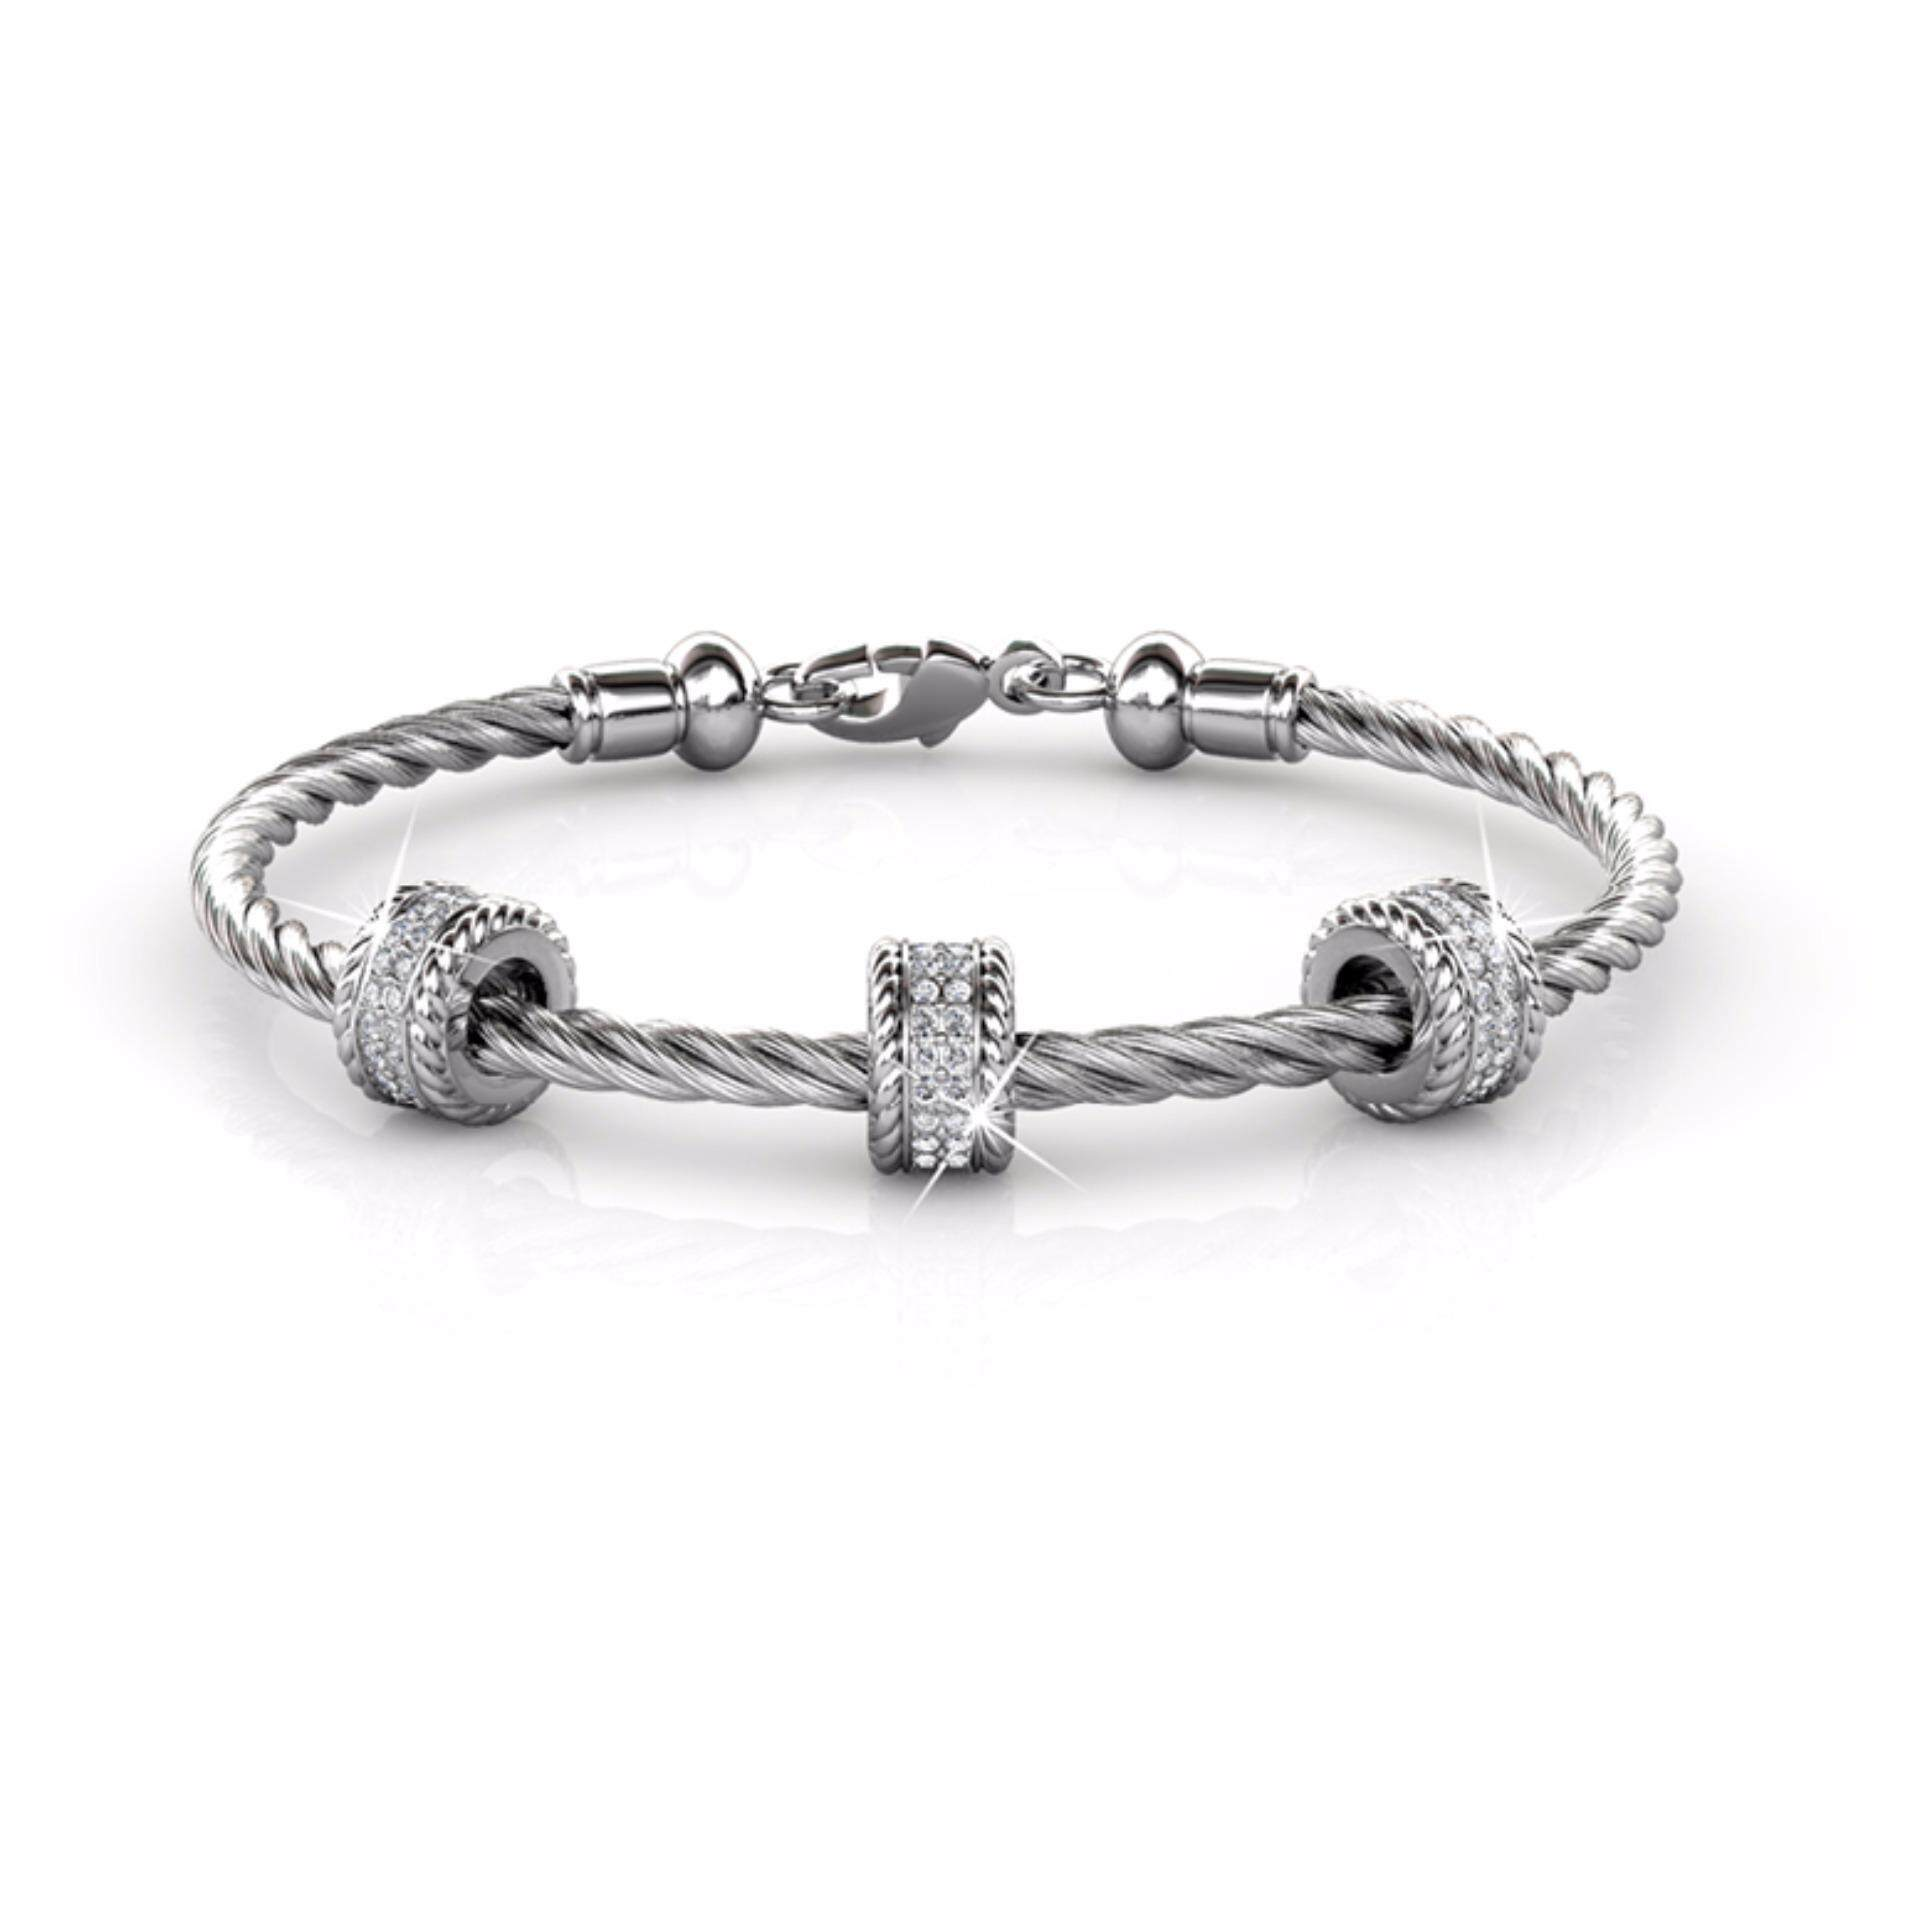 Bangle Roller (White Gold) Embellished With Crystals From Swarovski - Her Jewellery